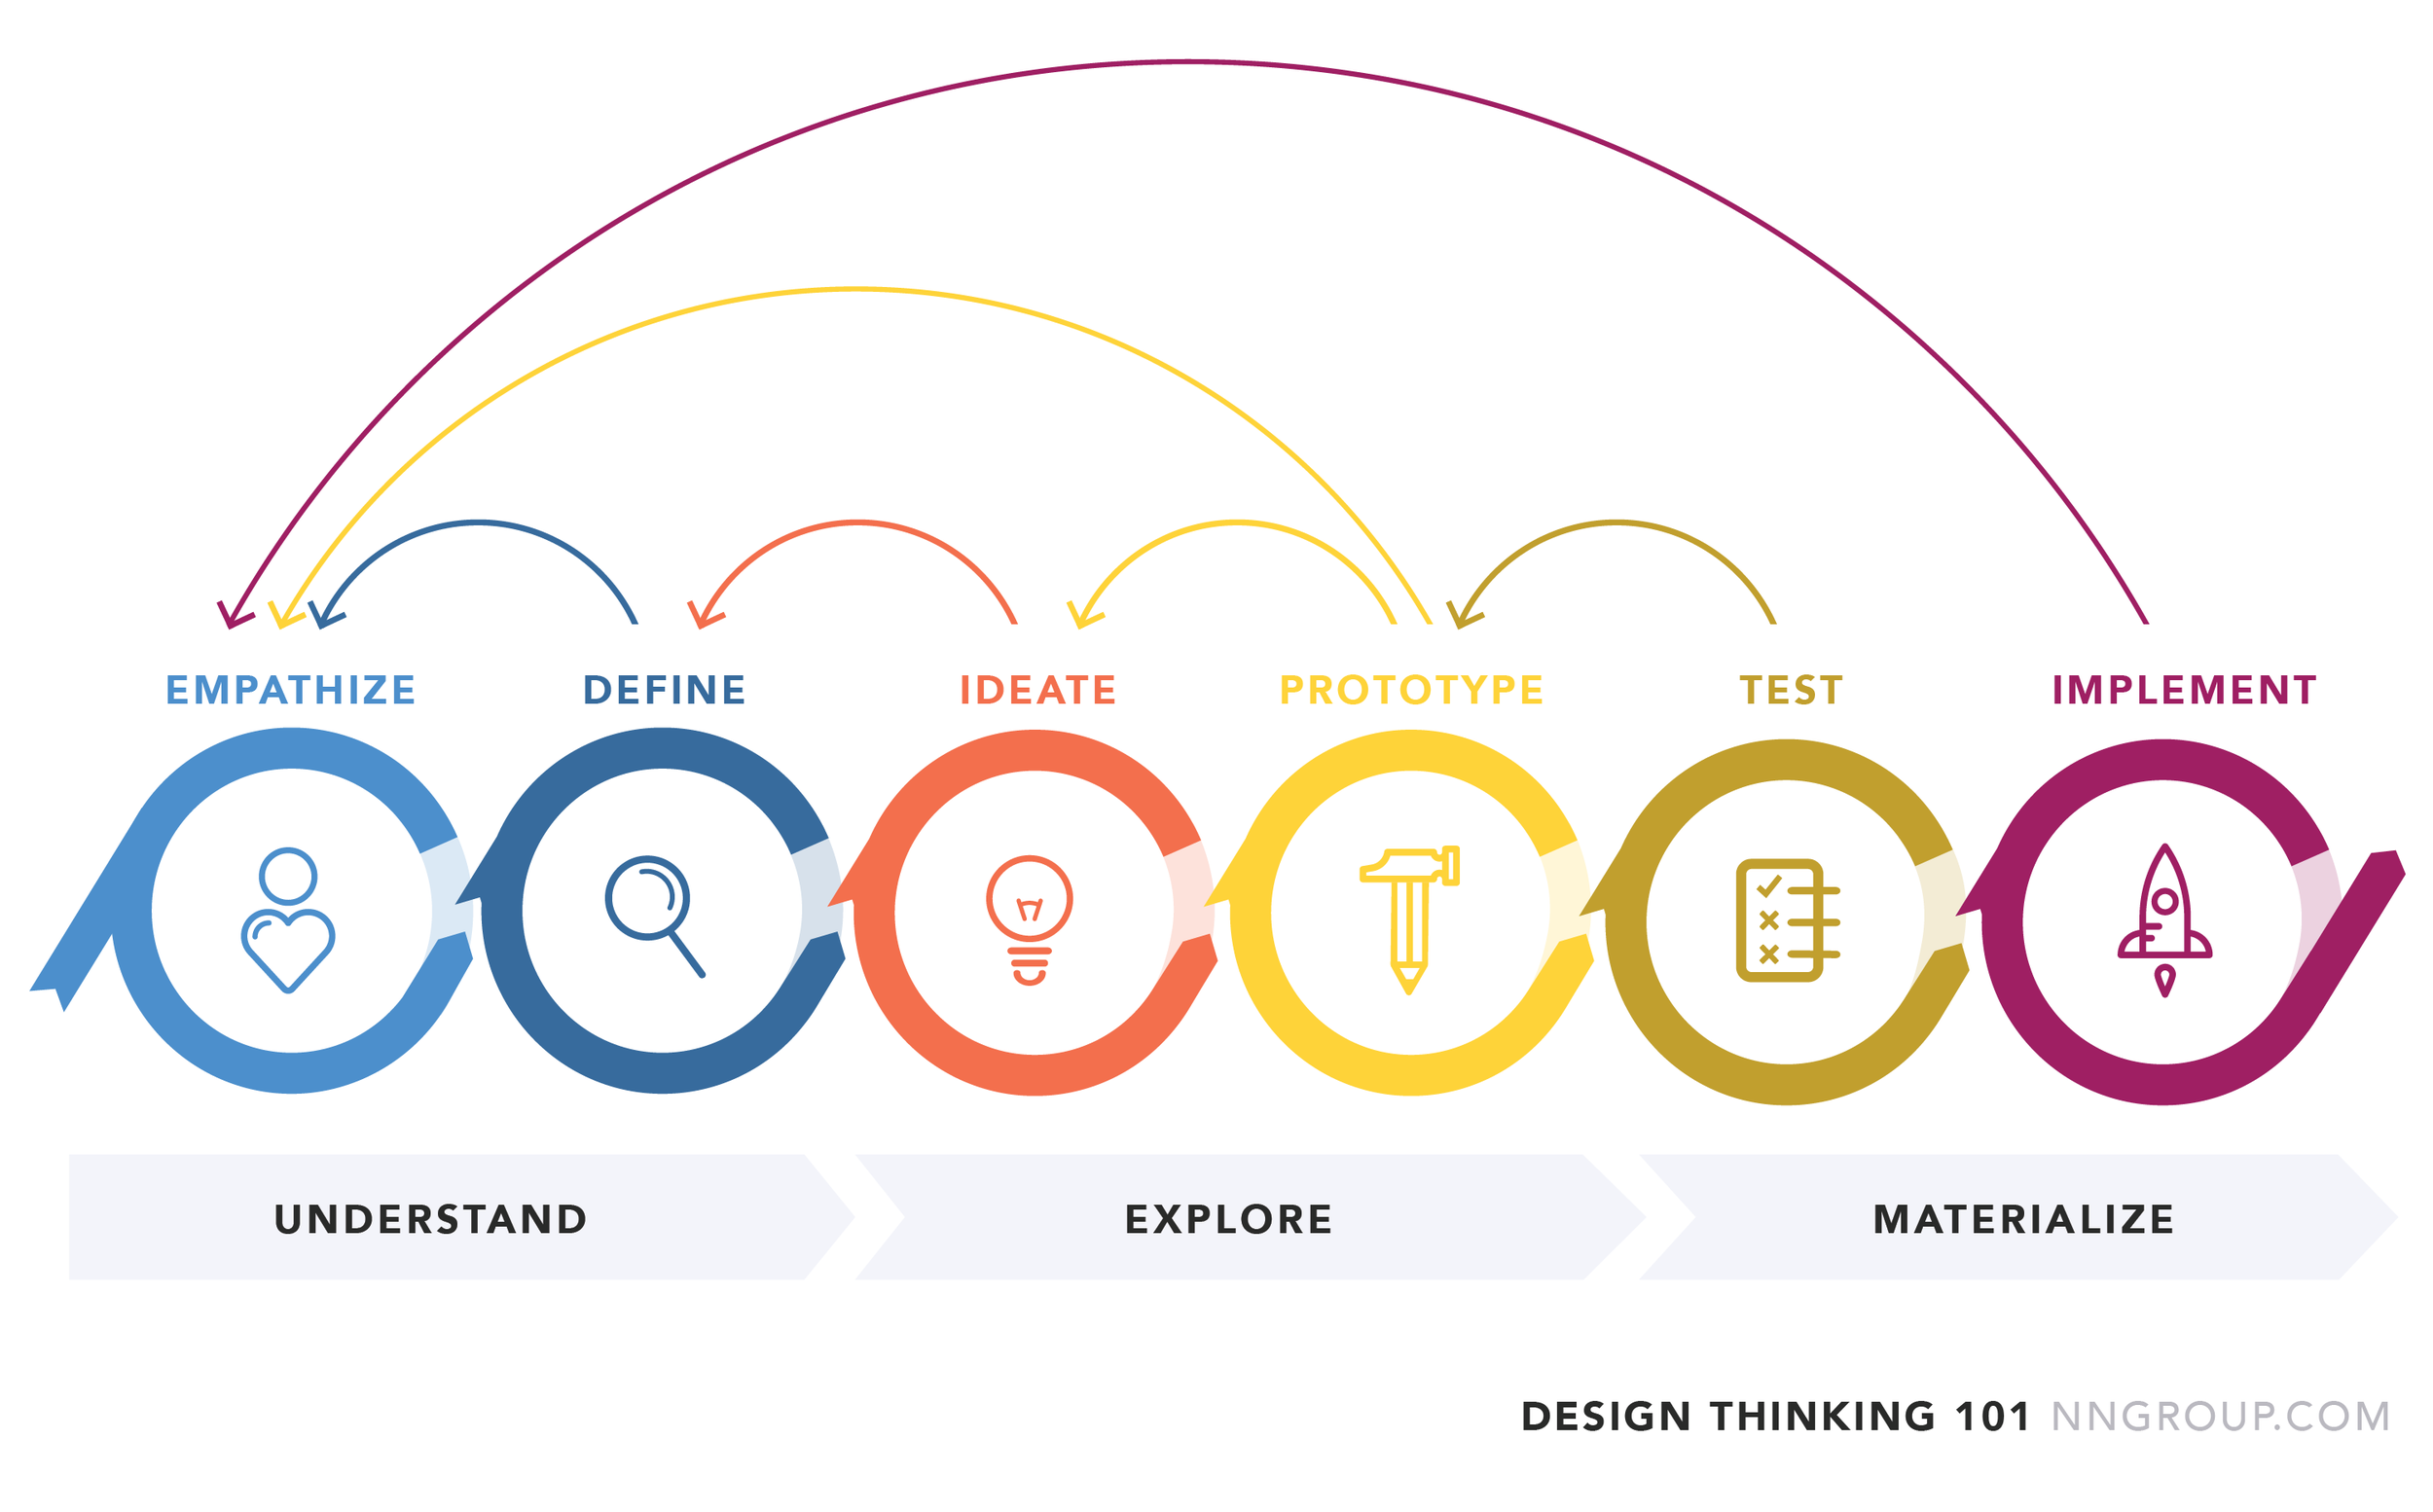 source:  https://www.nngroup.com/articles/design-thinking/